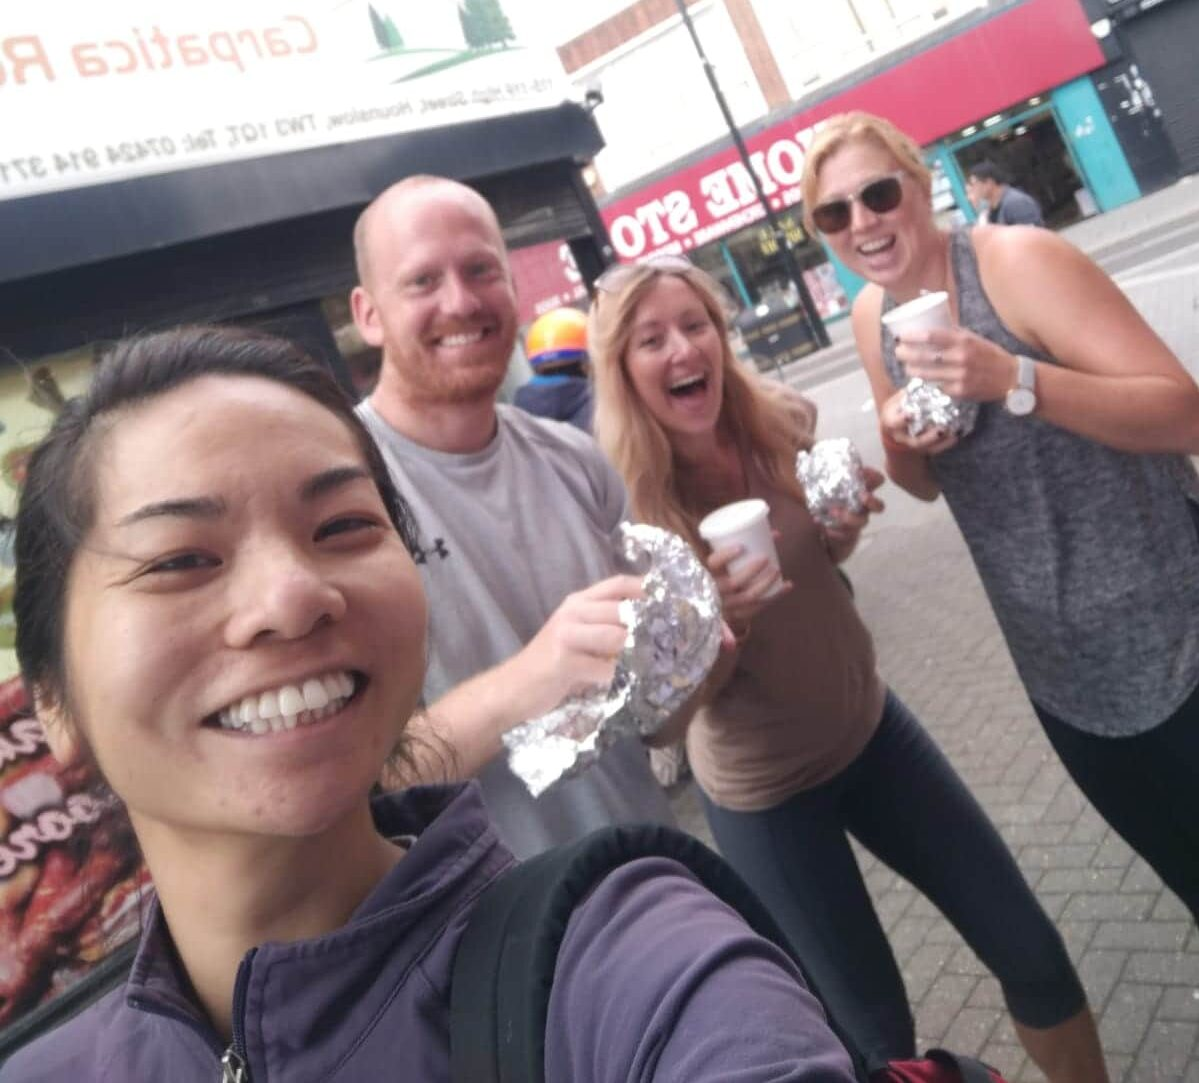 Four people smiling in London